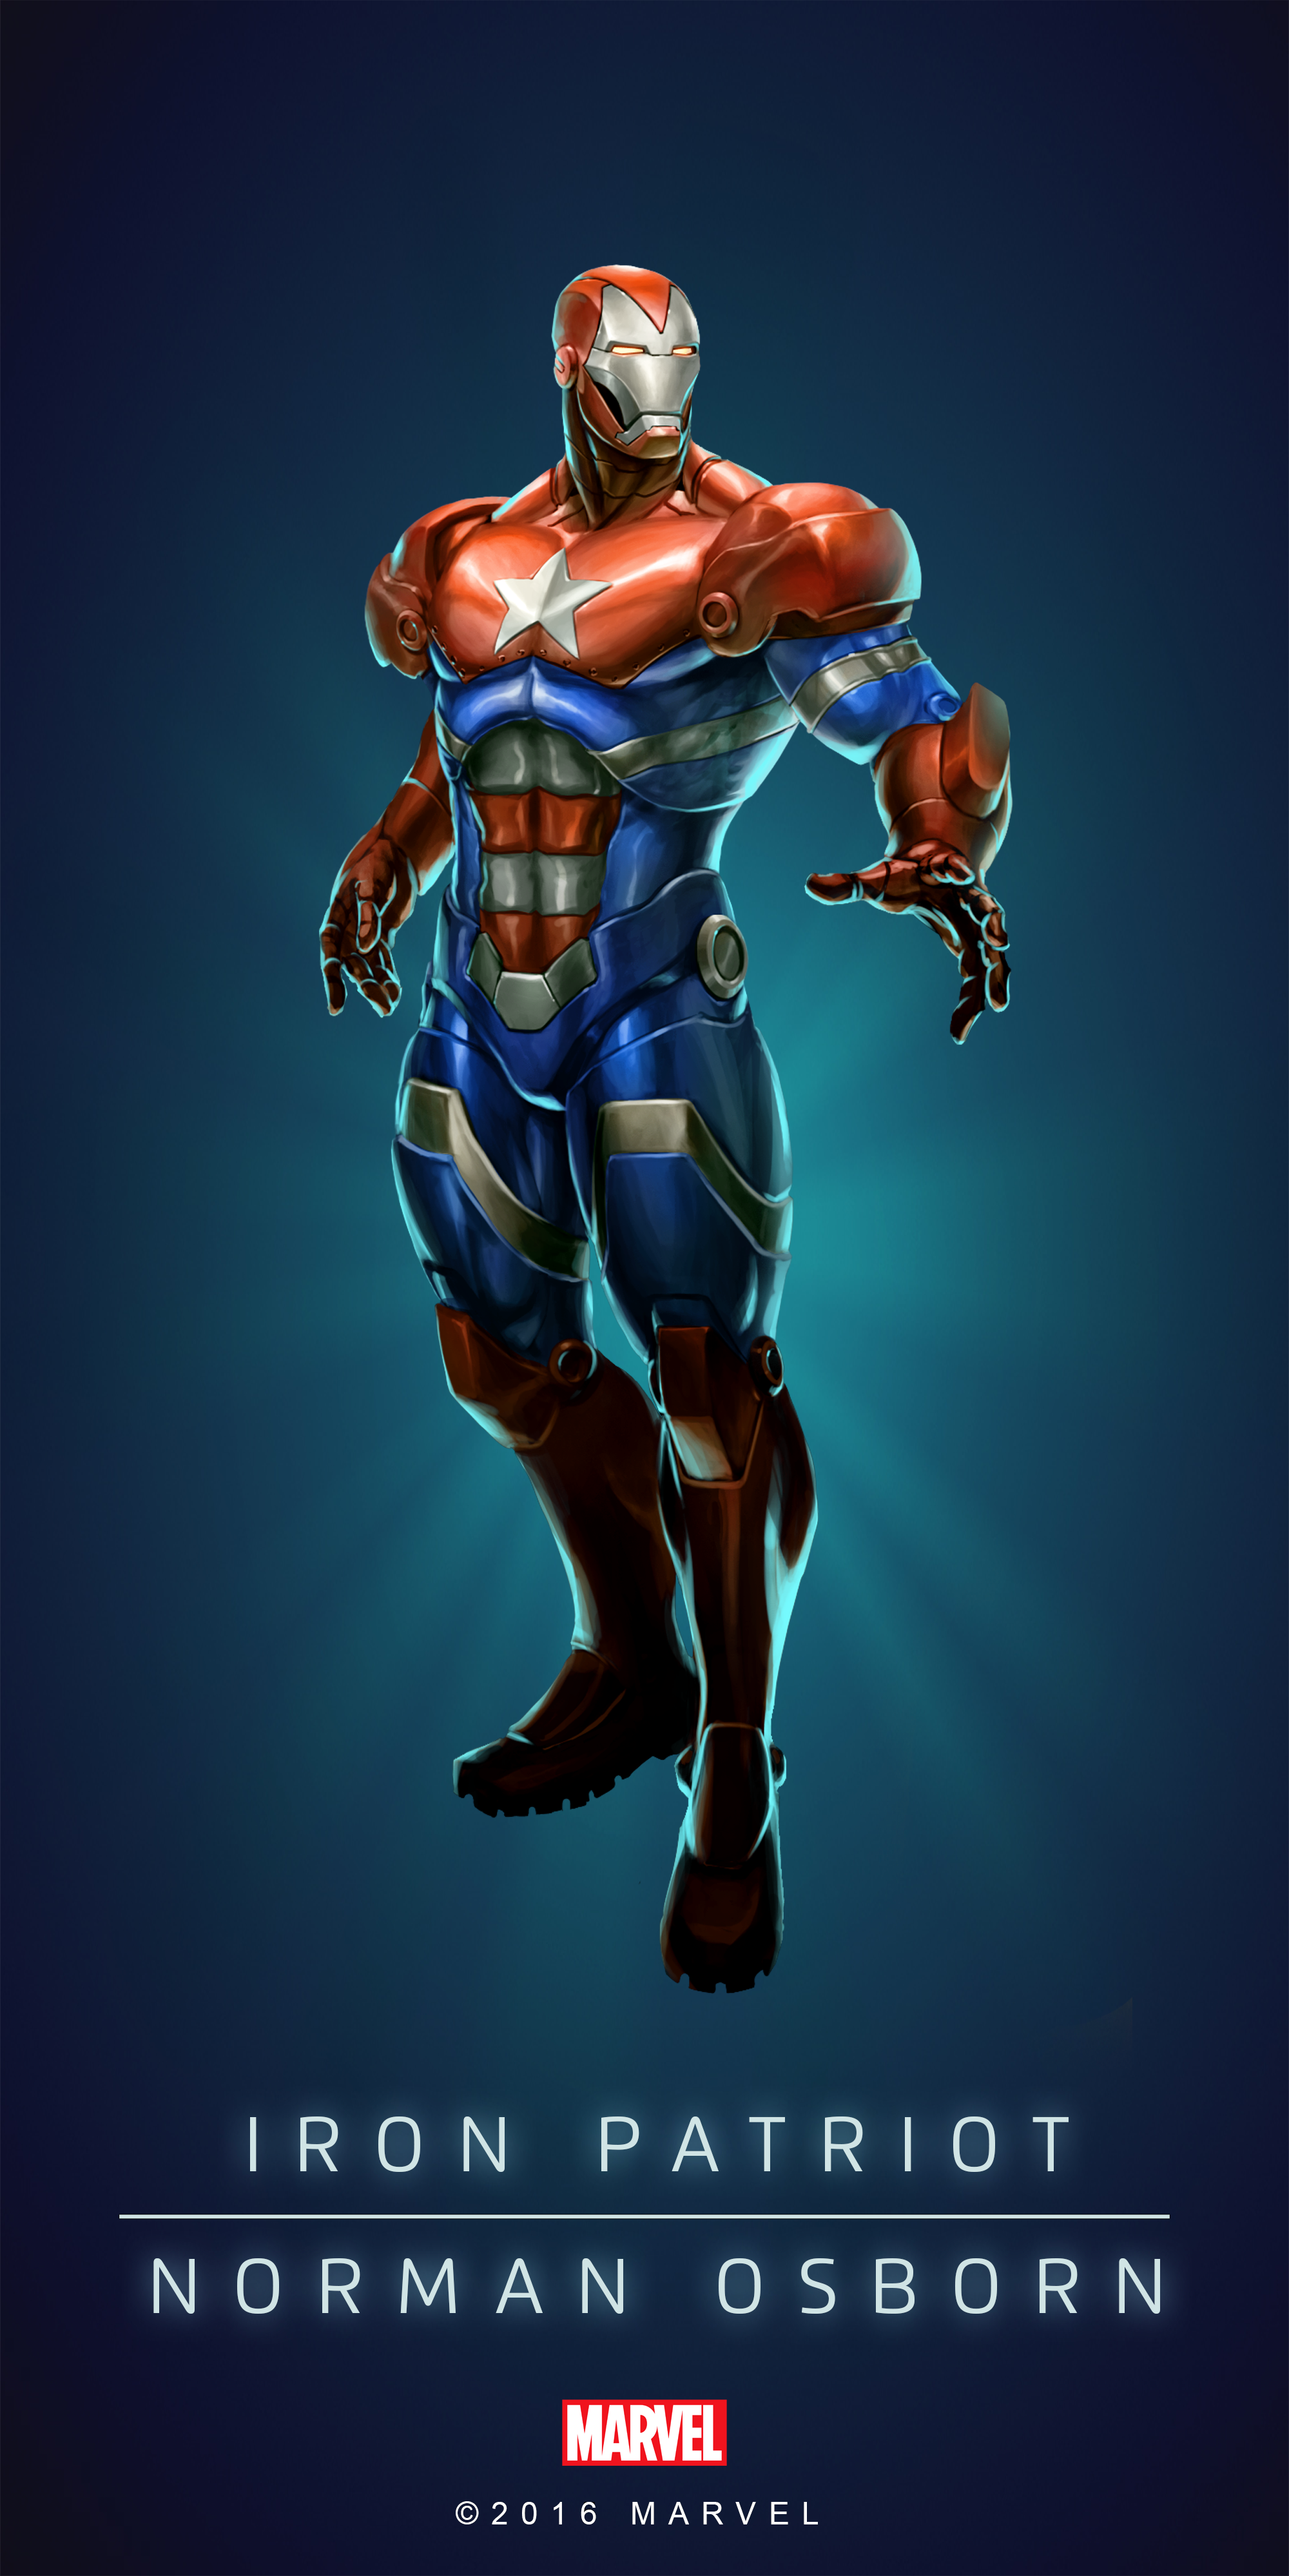 Iron Patriot Poster 03 Png 2000 3997 Marvel Superheroes Marvel Villains Marvel Comic Character